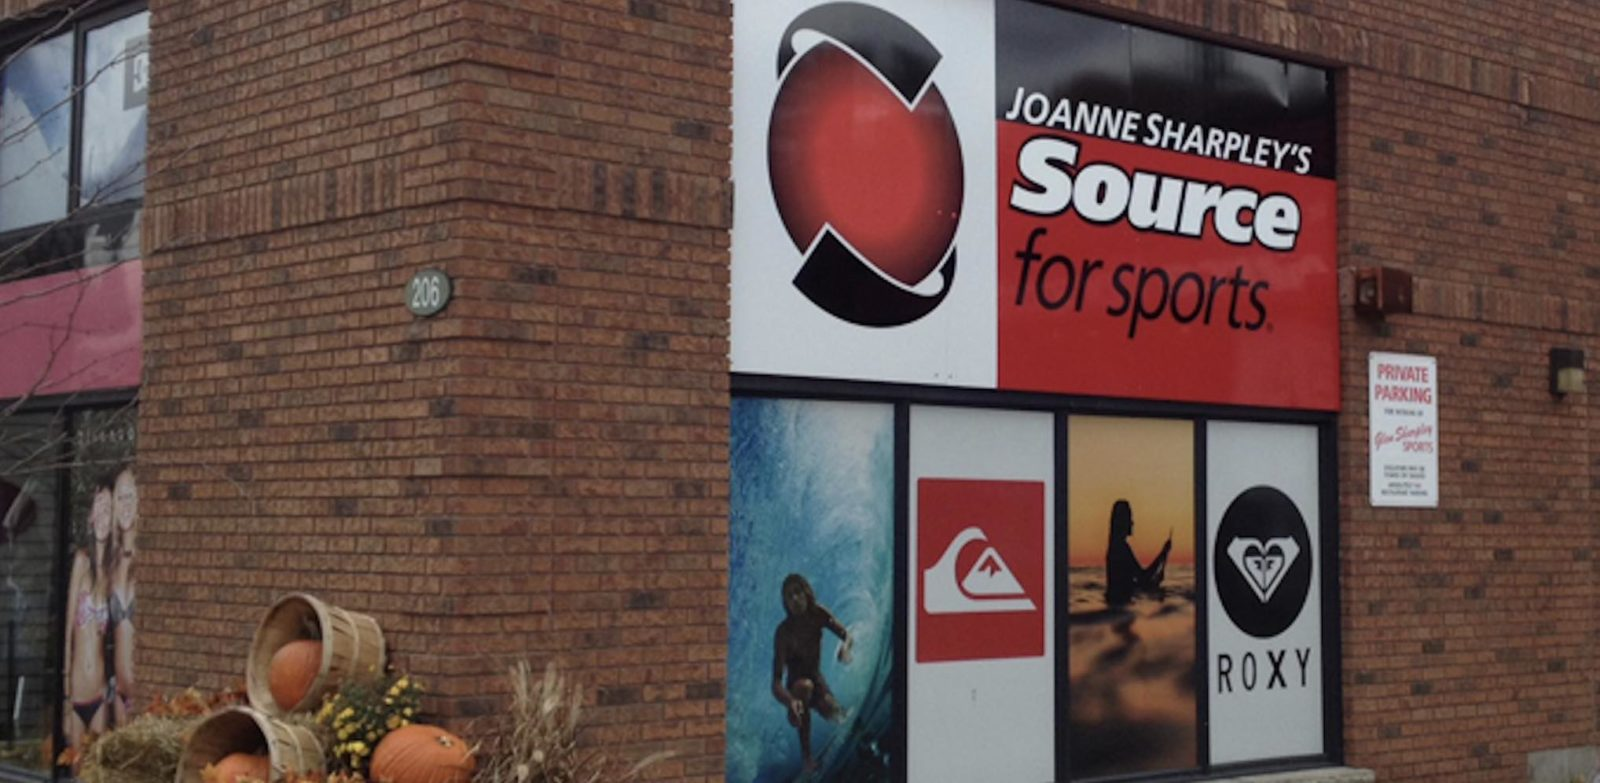 Joanne Sharpley's Source for Sports Source For Sports store front